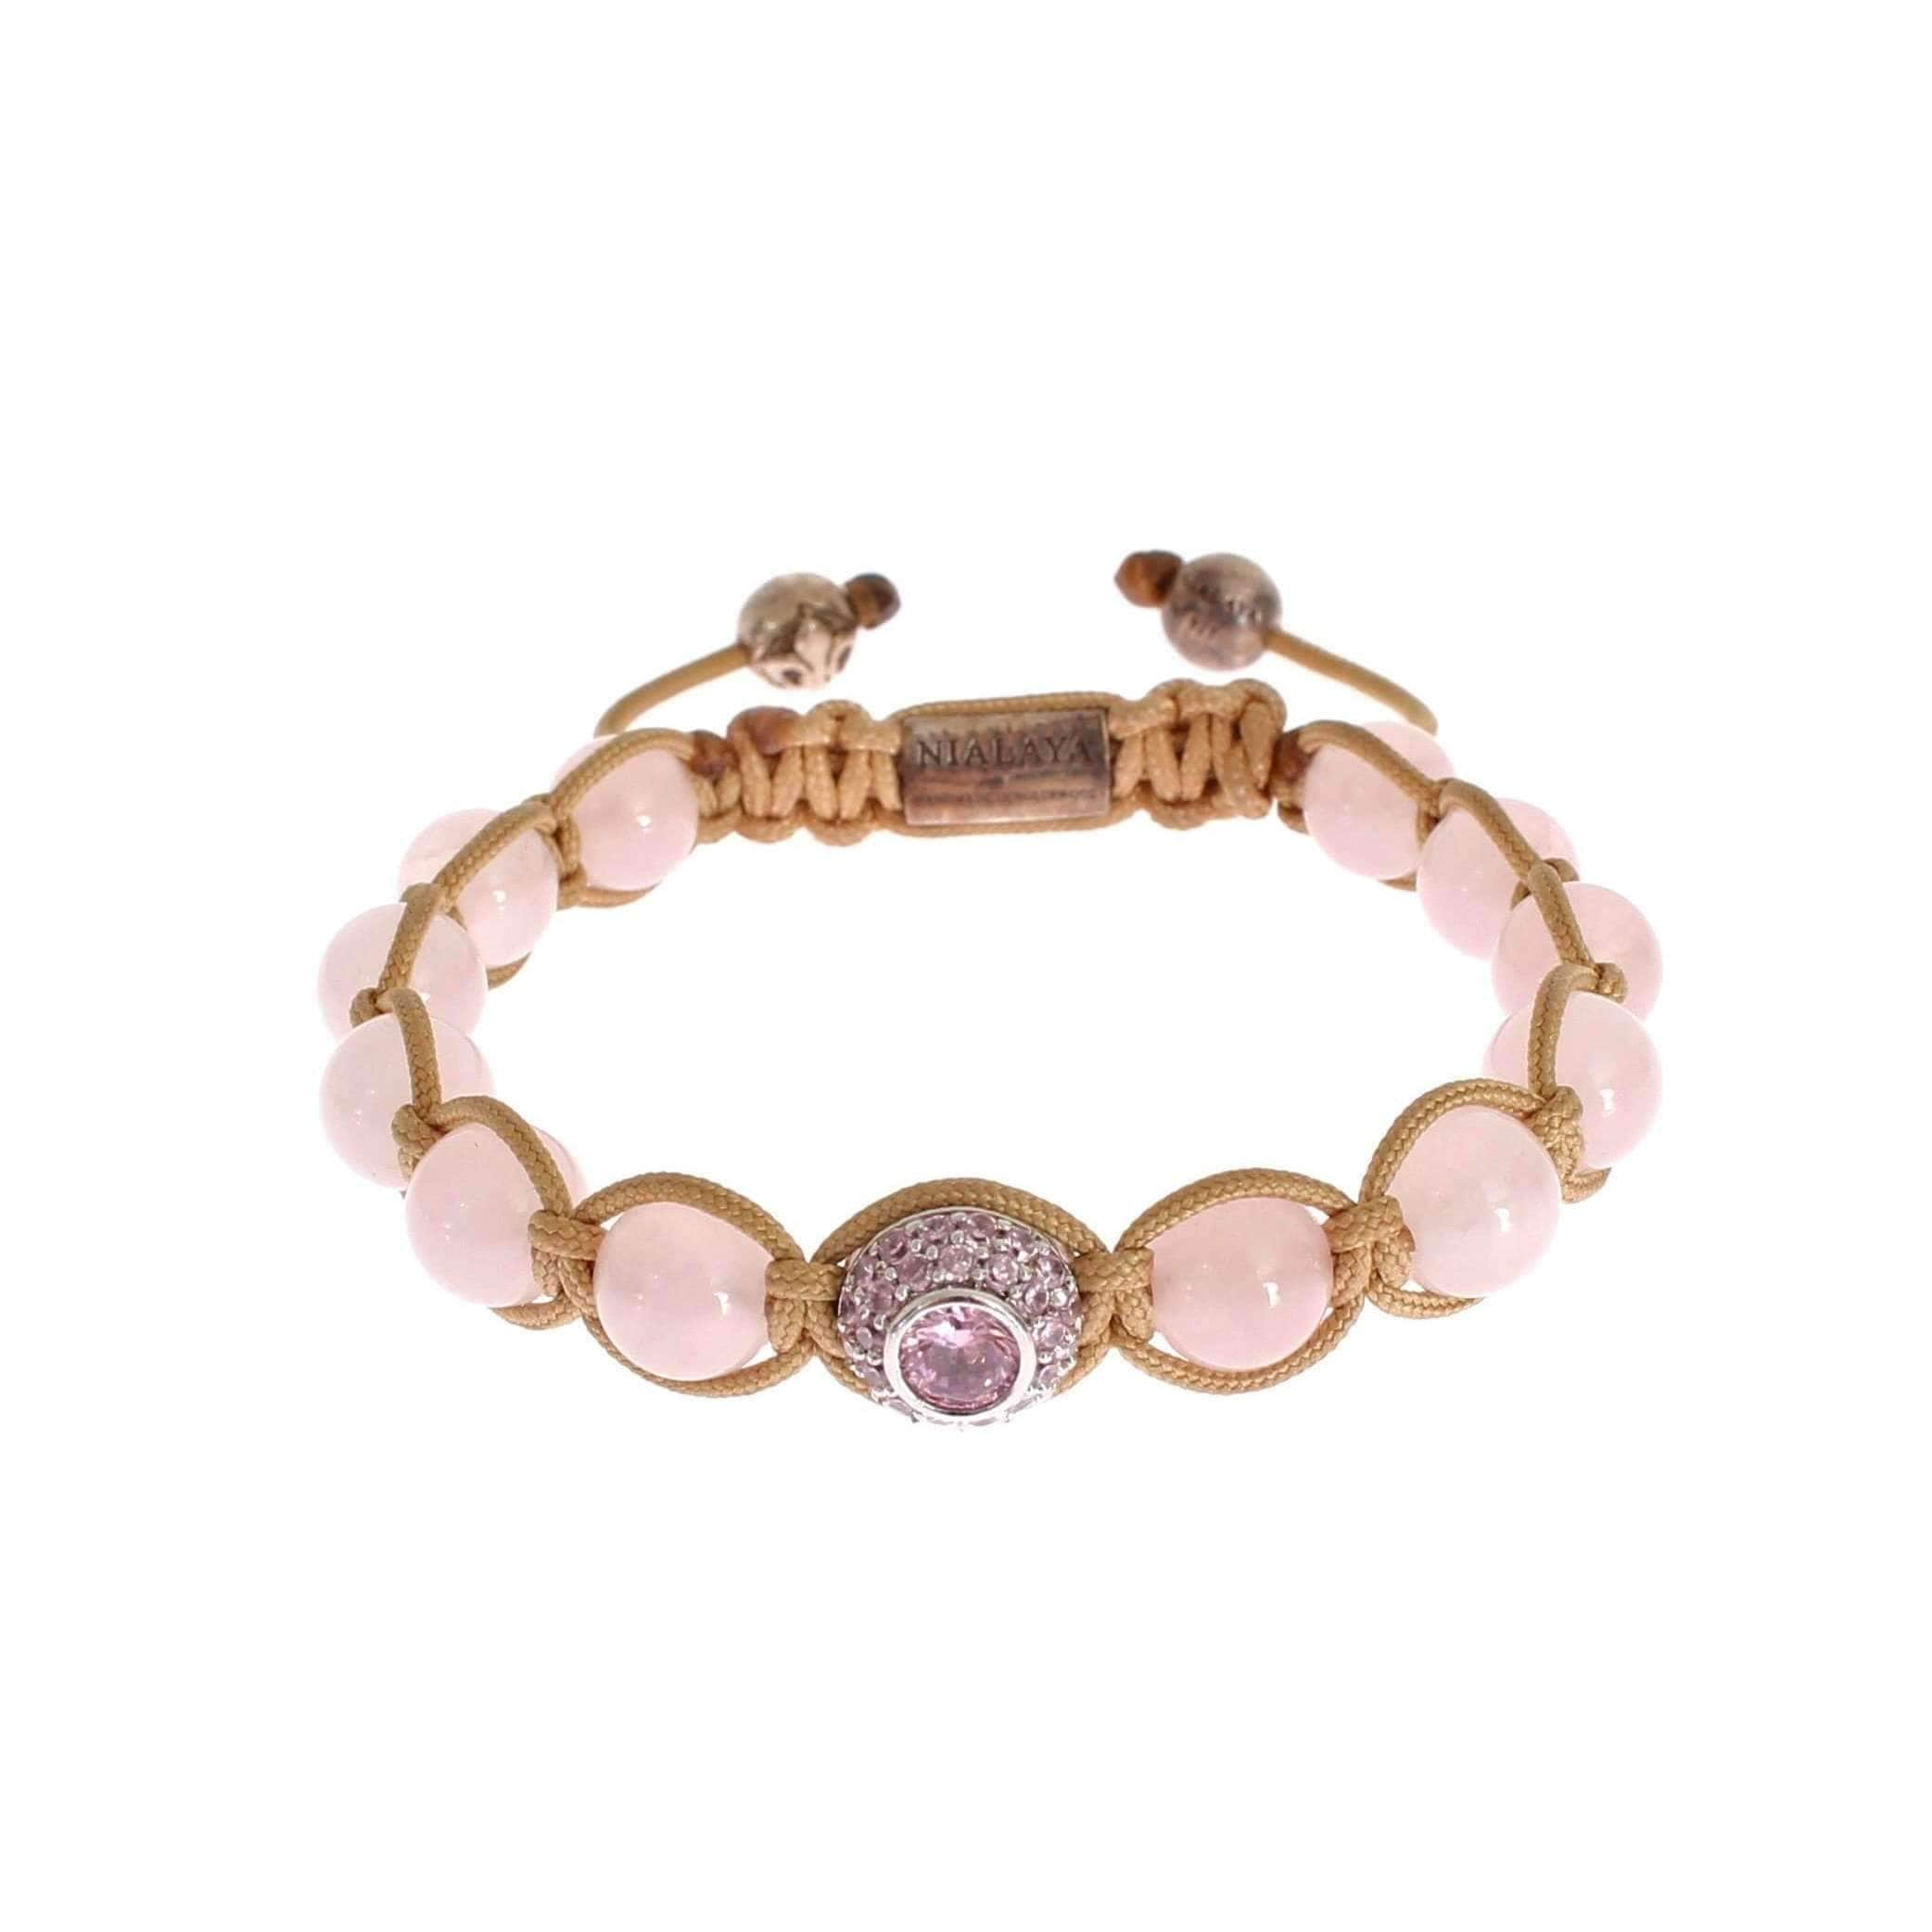 olanderimg logo shambala pink jannik products ring outlet modemani rose quartz bracelet beaded armband gold cz nialaya necklace silver